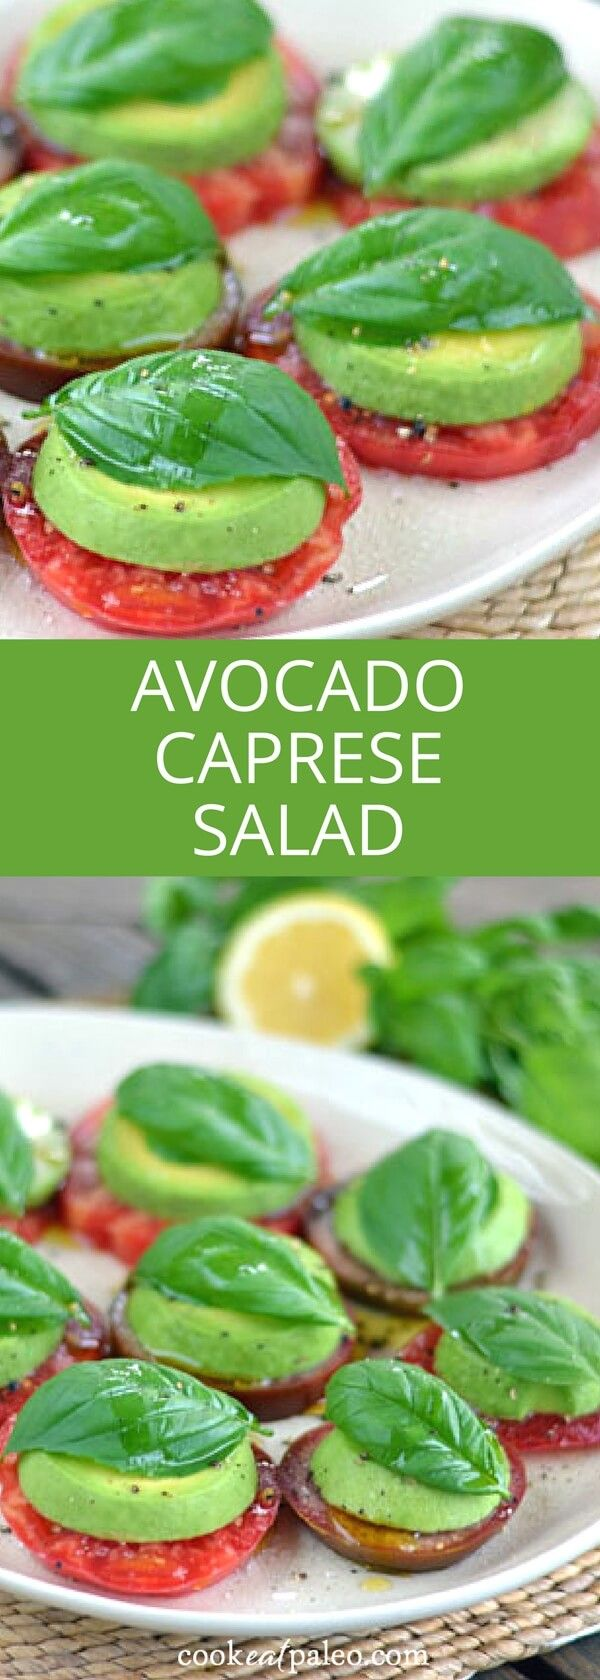 Avocado Caprese salad is paleo take on a Caprese salad with heirloom tomatoes and fresh basil. This salad is vegan, dairy-free, gluten-free, and... via @cookeatpaleo